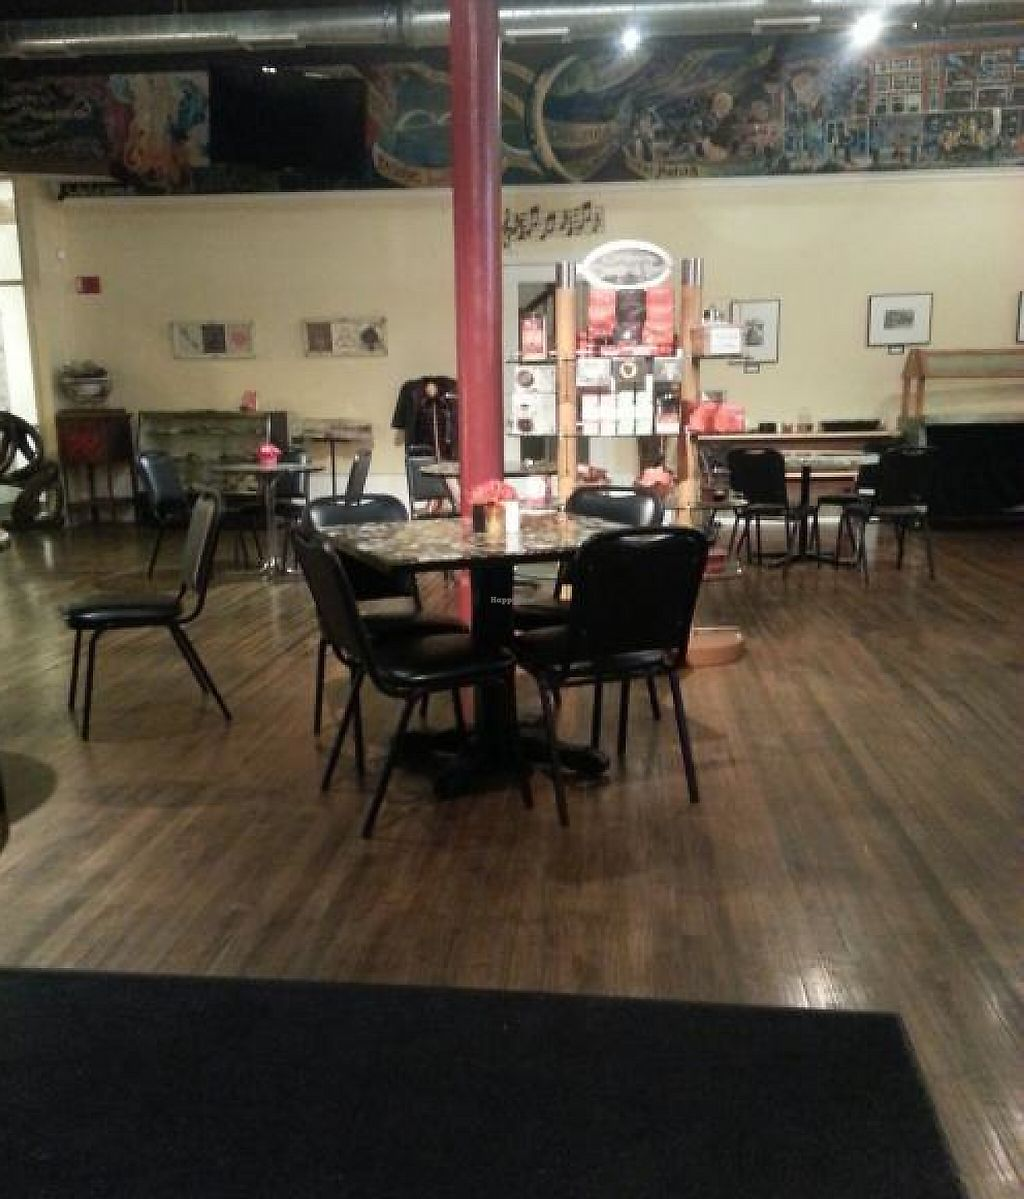 "Photo of CLOSED: Downtown Central Perk  by <a href=""/members/profile/KimGriffiths"">KimGriffiths</a> <br/>View from the booths towards front seating area <br/> November 13, 2013  - <a href='/contact/abuse/image/30543/199946'>Report</a>"